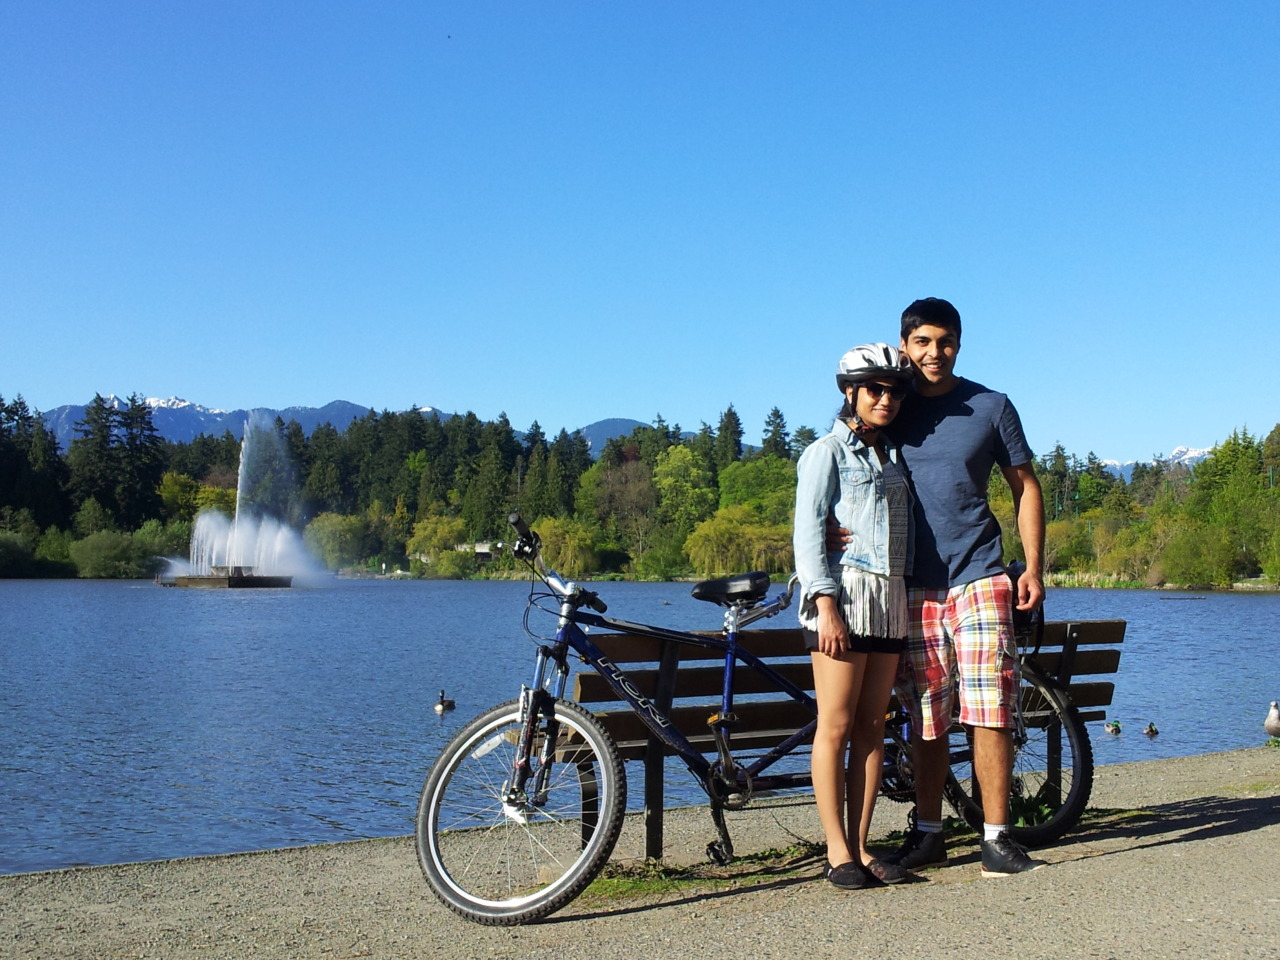 Seawall fun with that amazing boy.  I can finally check off tandem biking from my bucket list!